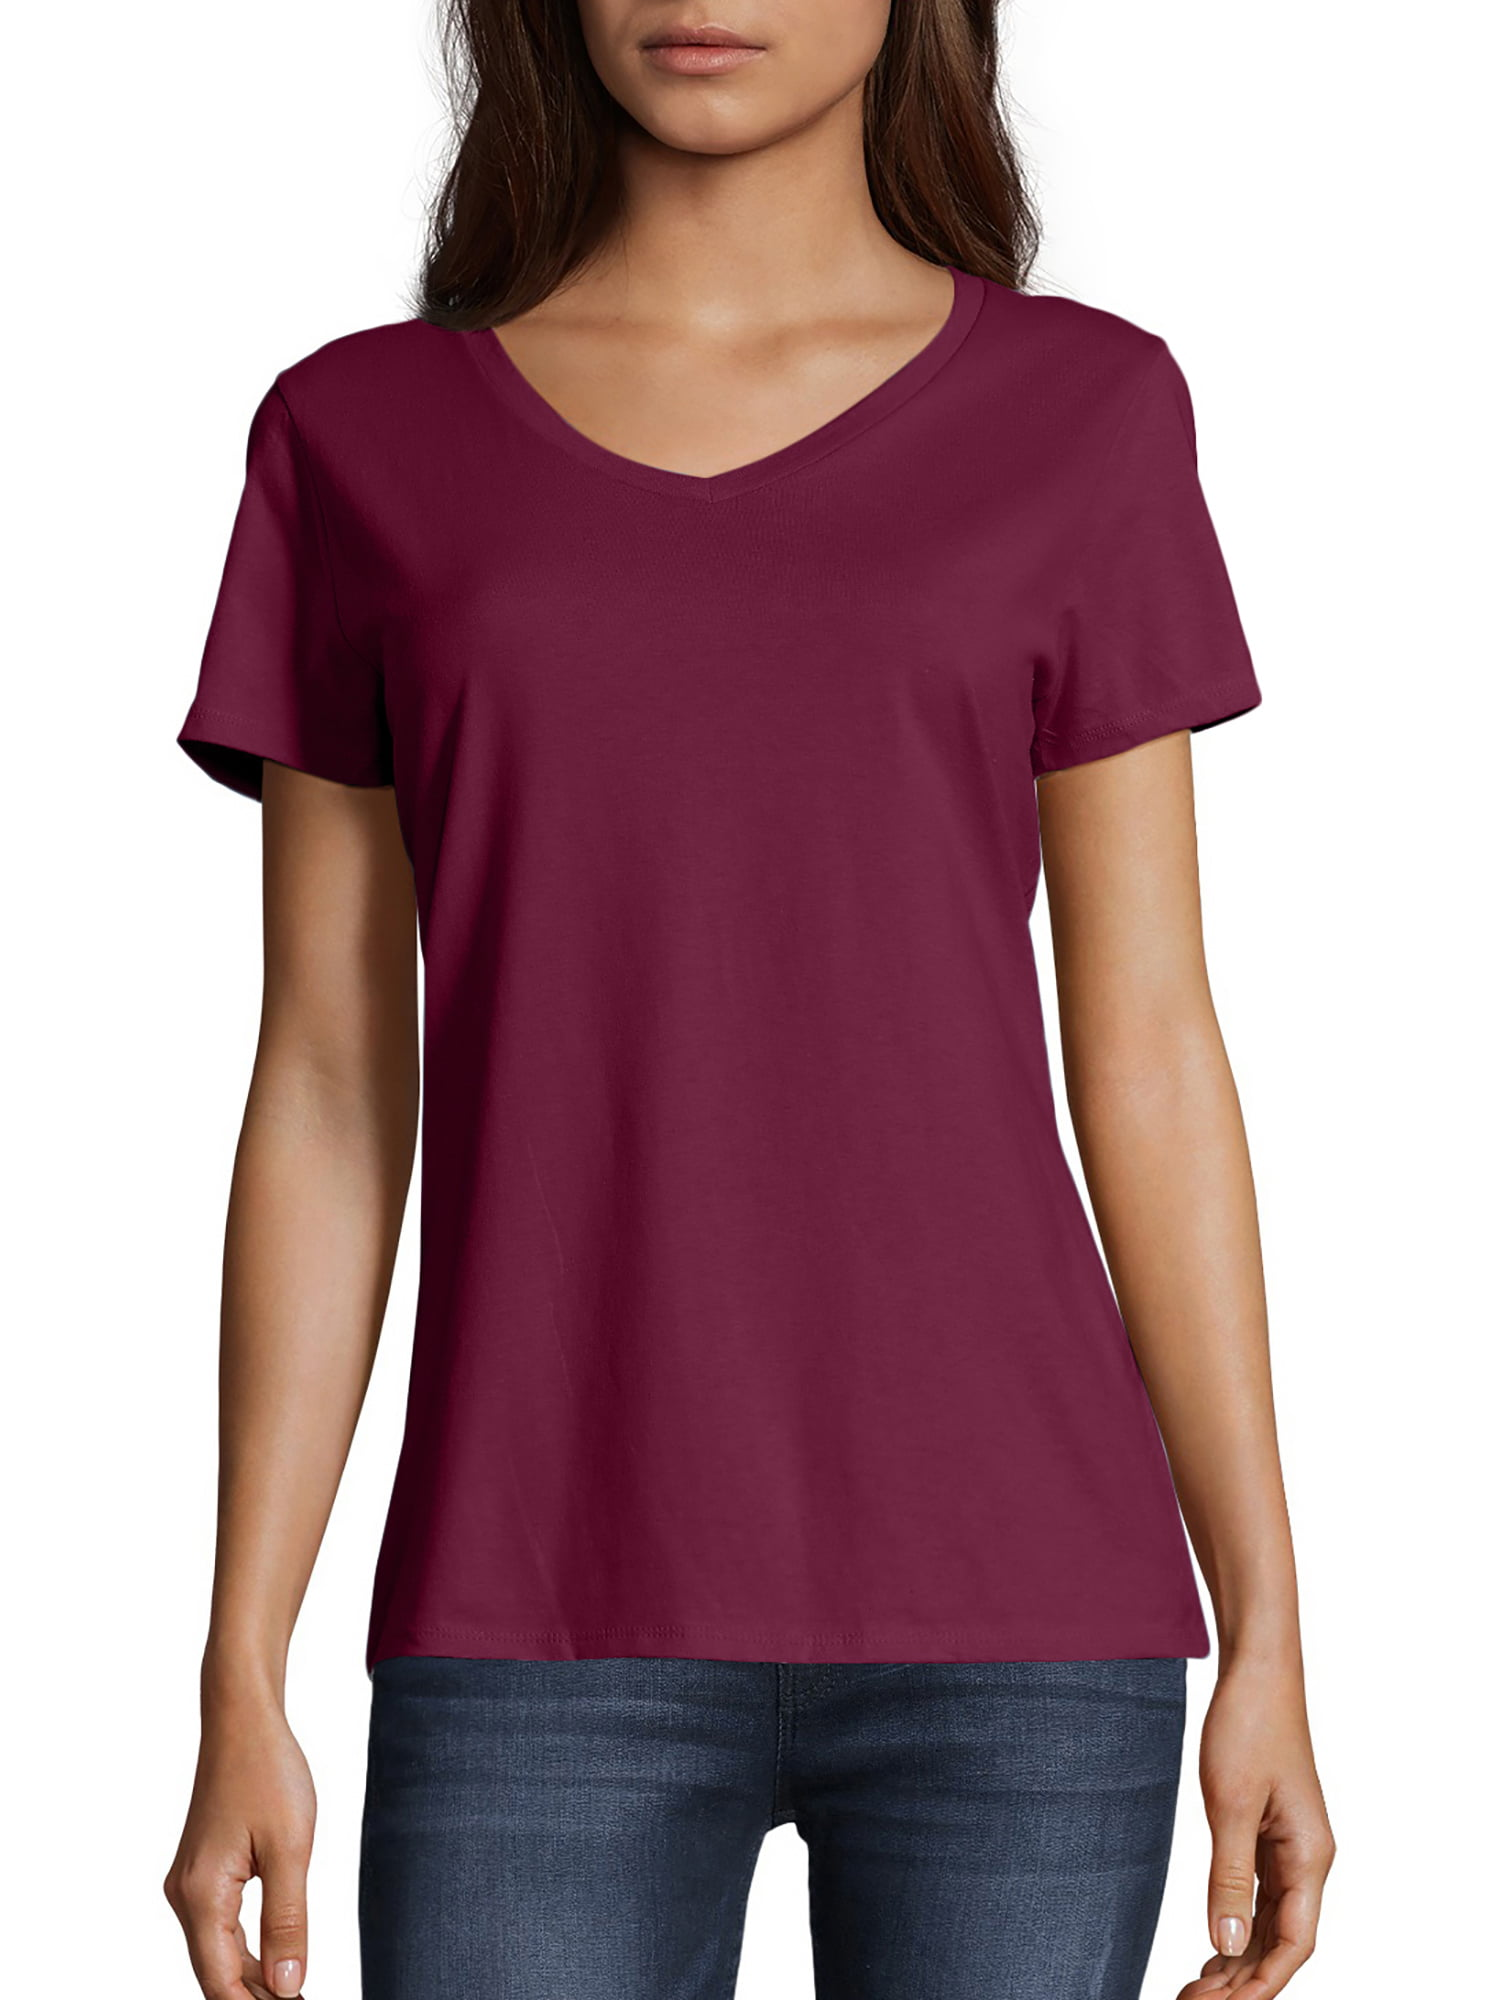 New Women/'s Juniors Sheer Graphic Light Weight Top Cap Sleeve V-Neck T-Shirt